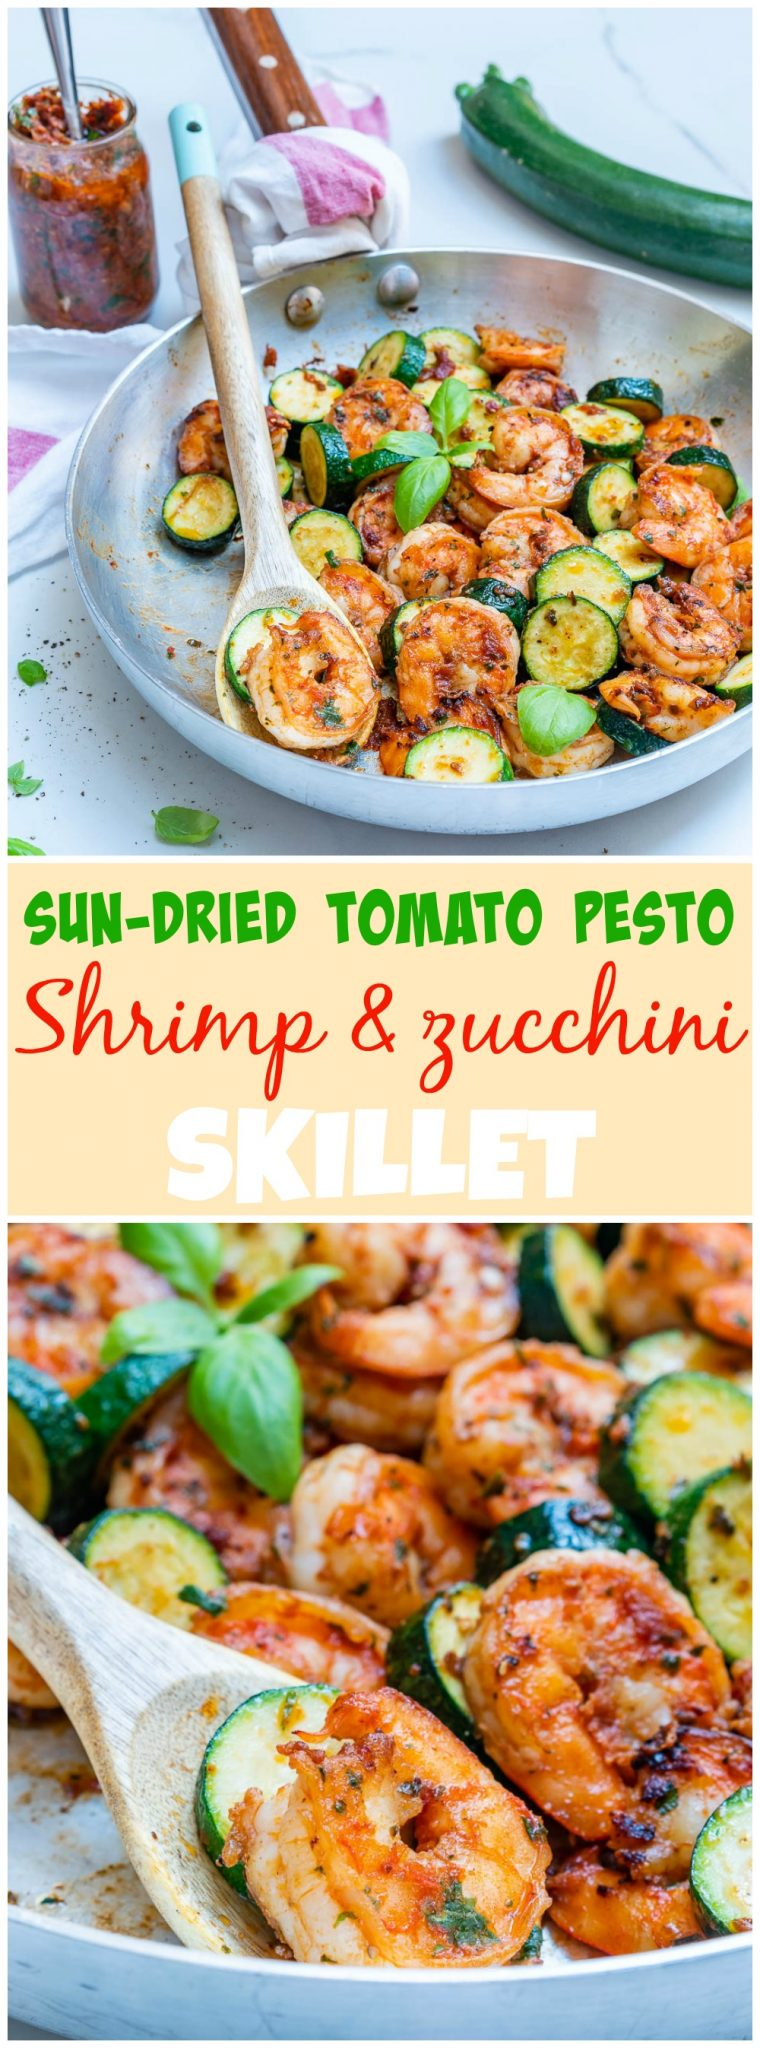 Sun-dried Tomato Pesto Shrimp Zucchini Skillet Meal Prep